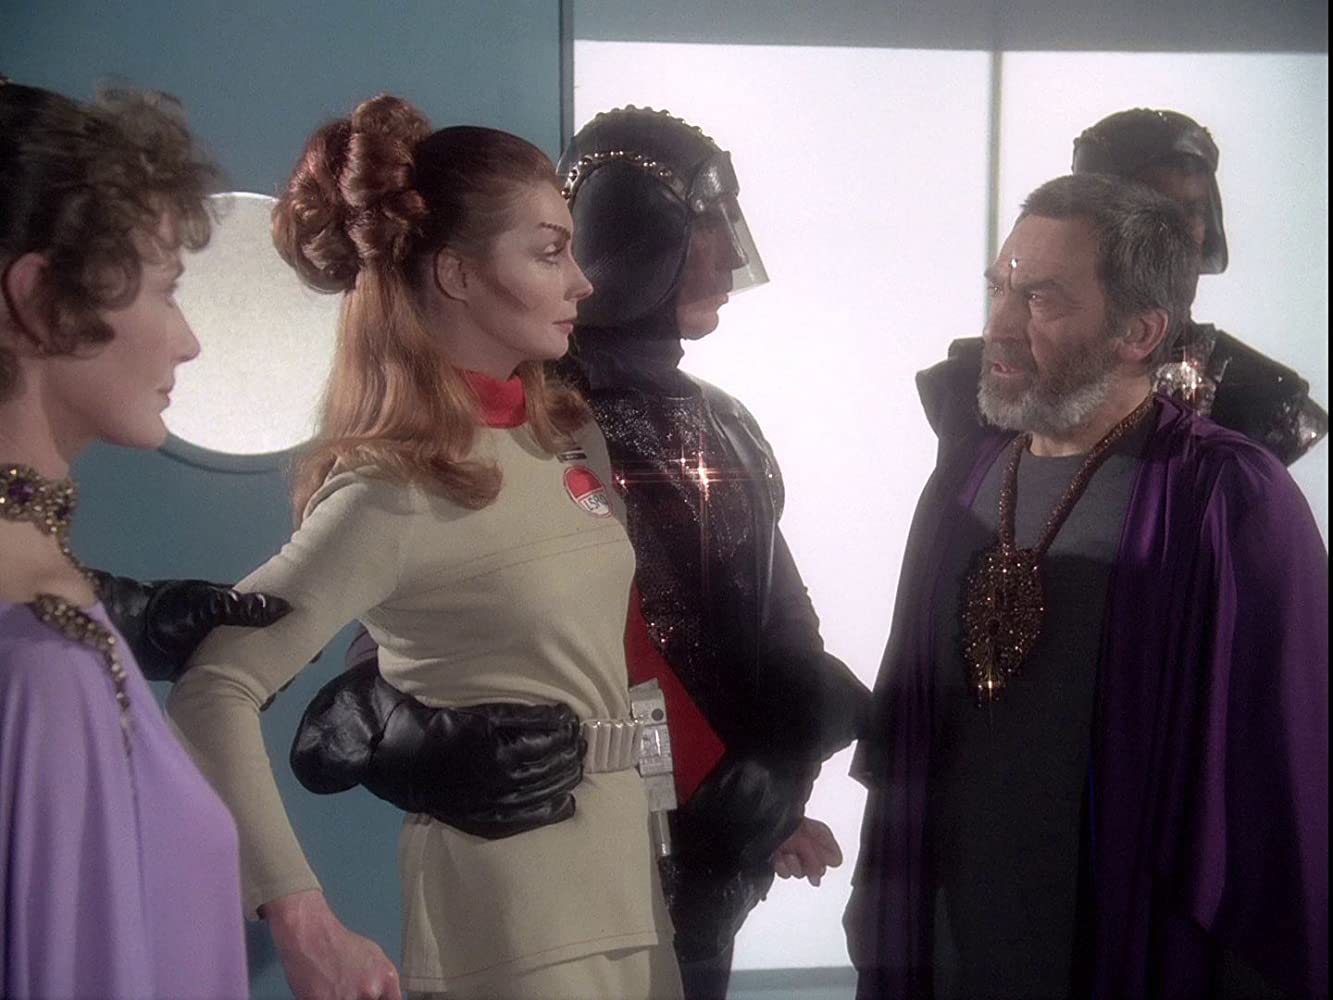 Ann Firbank, Catherine Schell, and Patrick Troughton in Space: 1999 (1975)